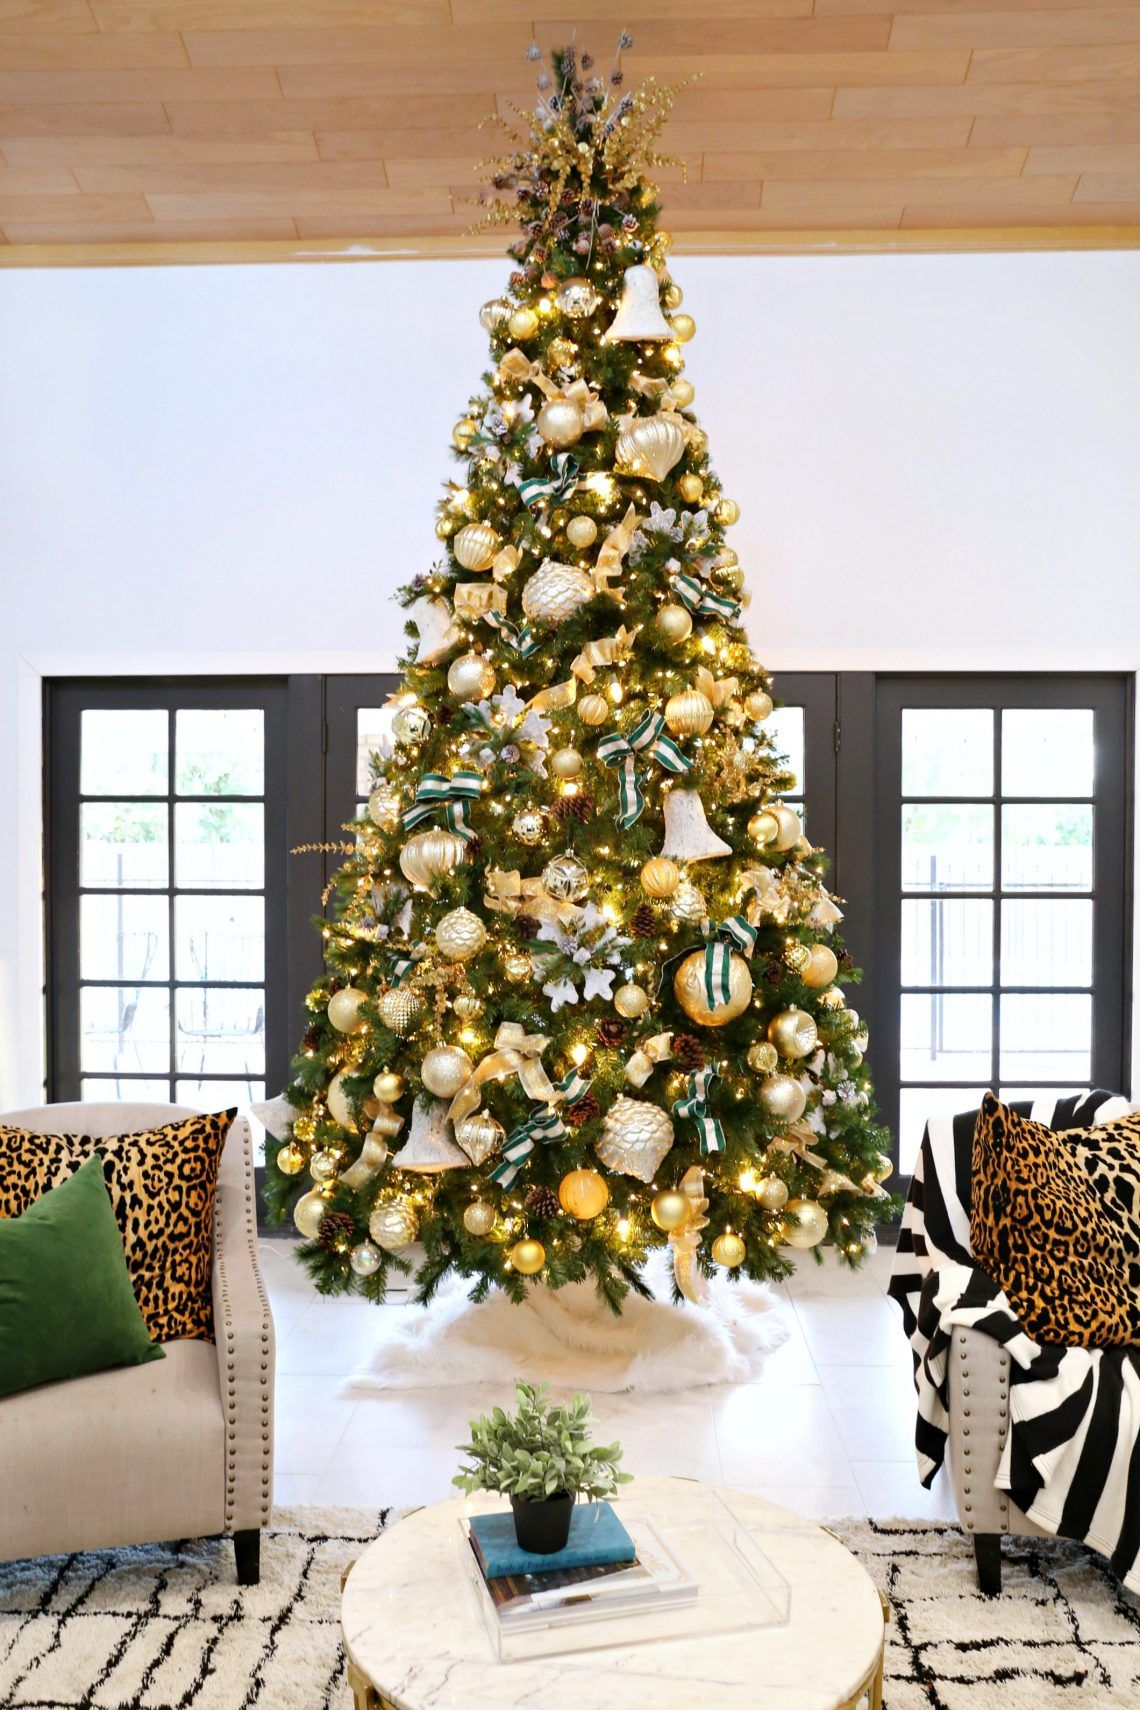 How To Decorate A Christmas Tree With The Home Depot Classy Clutter Christmas Tree Decorations Christmas Tree Gold Christmas Tree